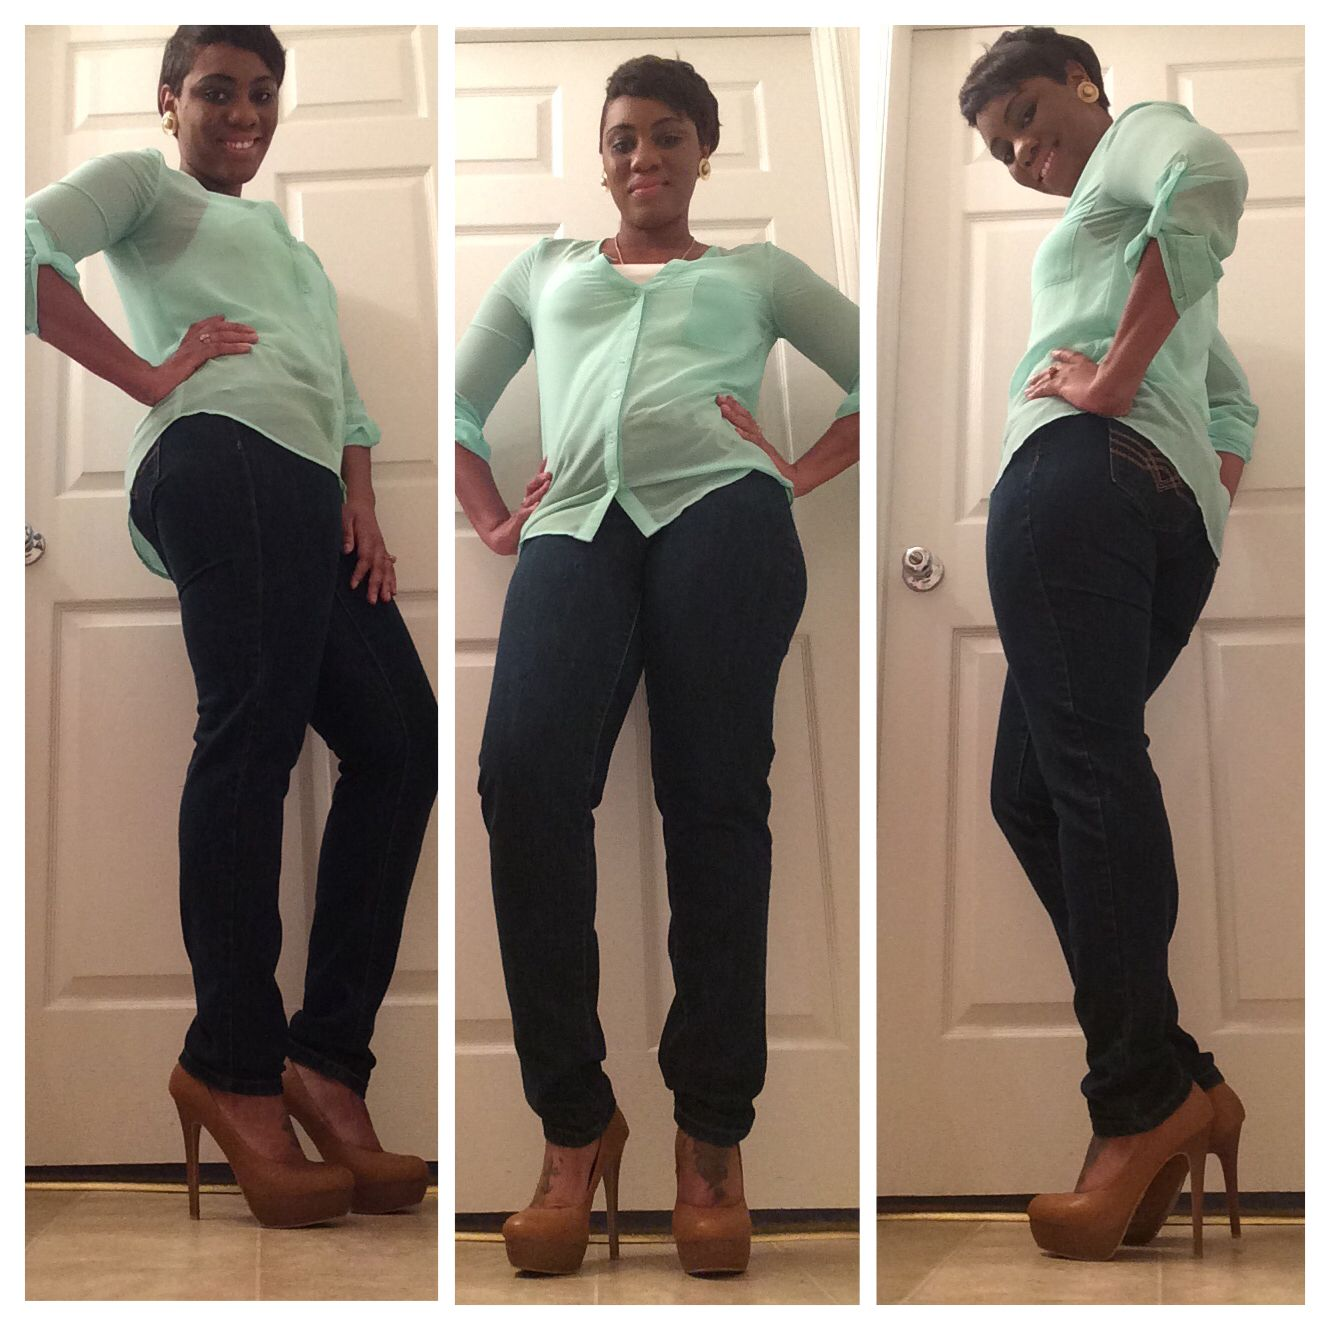 Blouse: JC Penney  Jeans: Body Central  Shoes: Ebay  Necklace: Gifted Earrings: my moms jewelry box